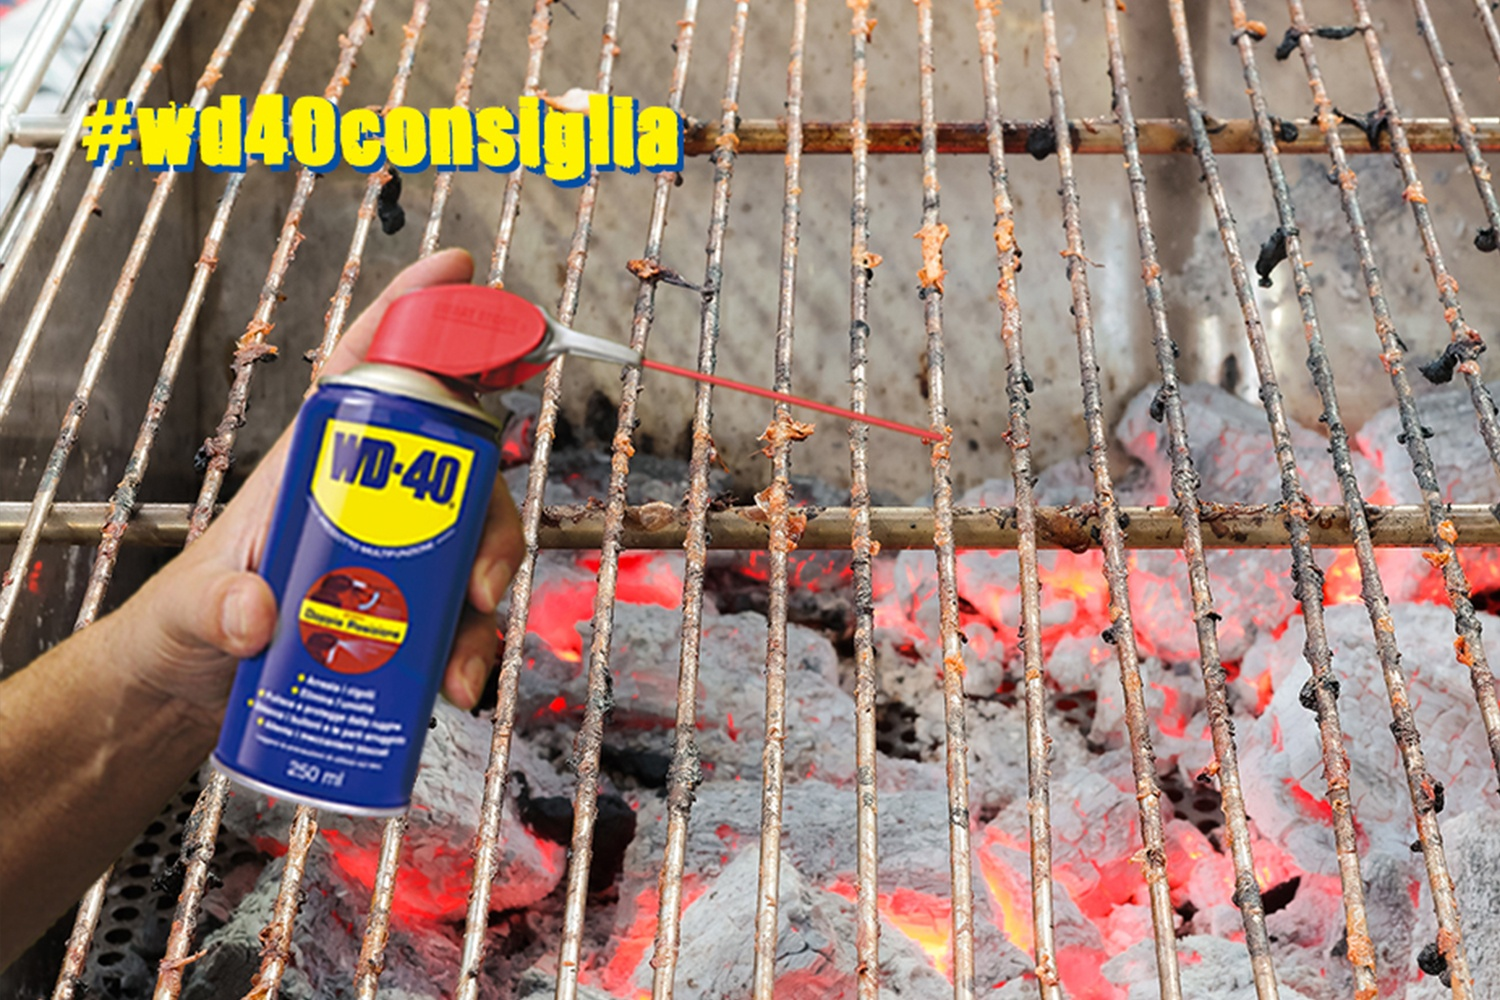 wd40 digital pr e social media management_OFG_Advertising_agenzia_di_comunicazione_a_milano.jpg